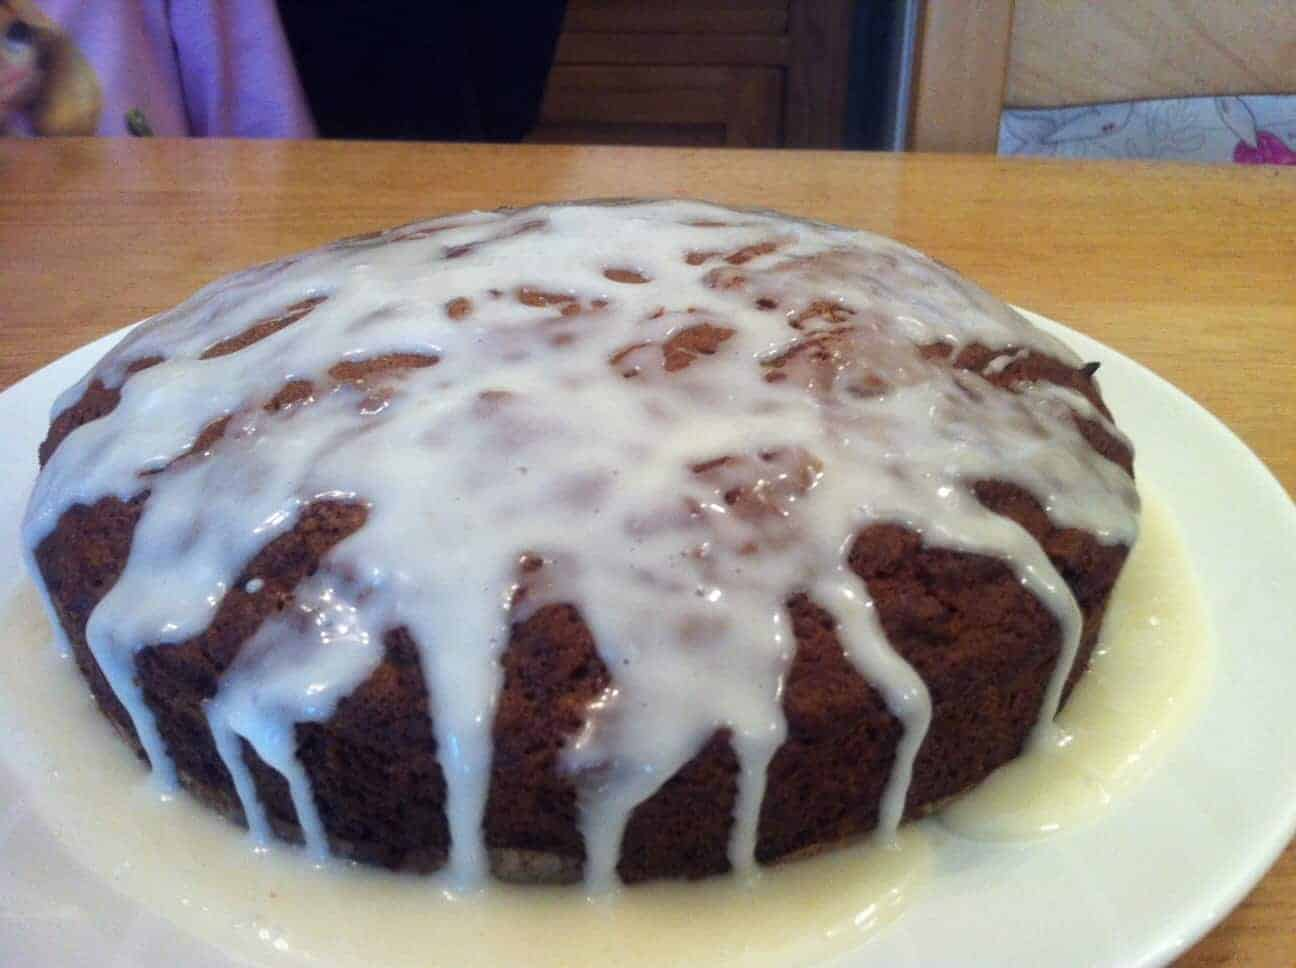 Carrot cake with drizzled orange icing - BakingQueen74